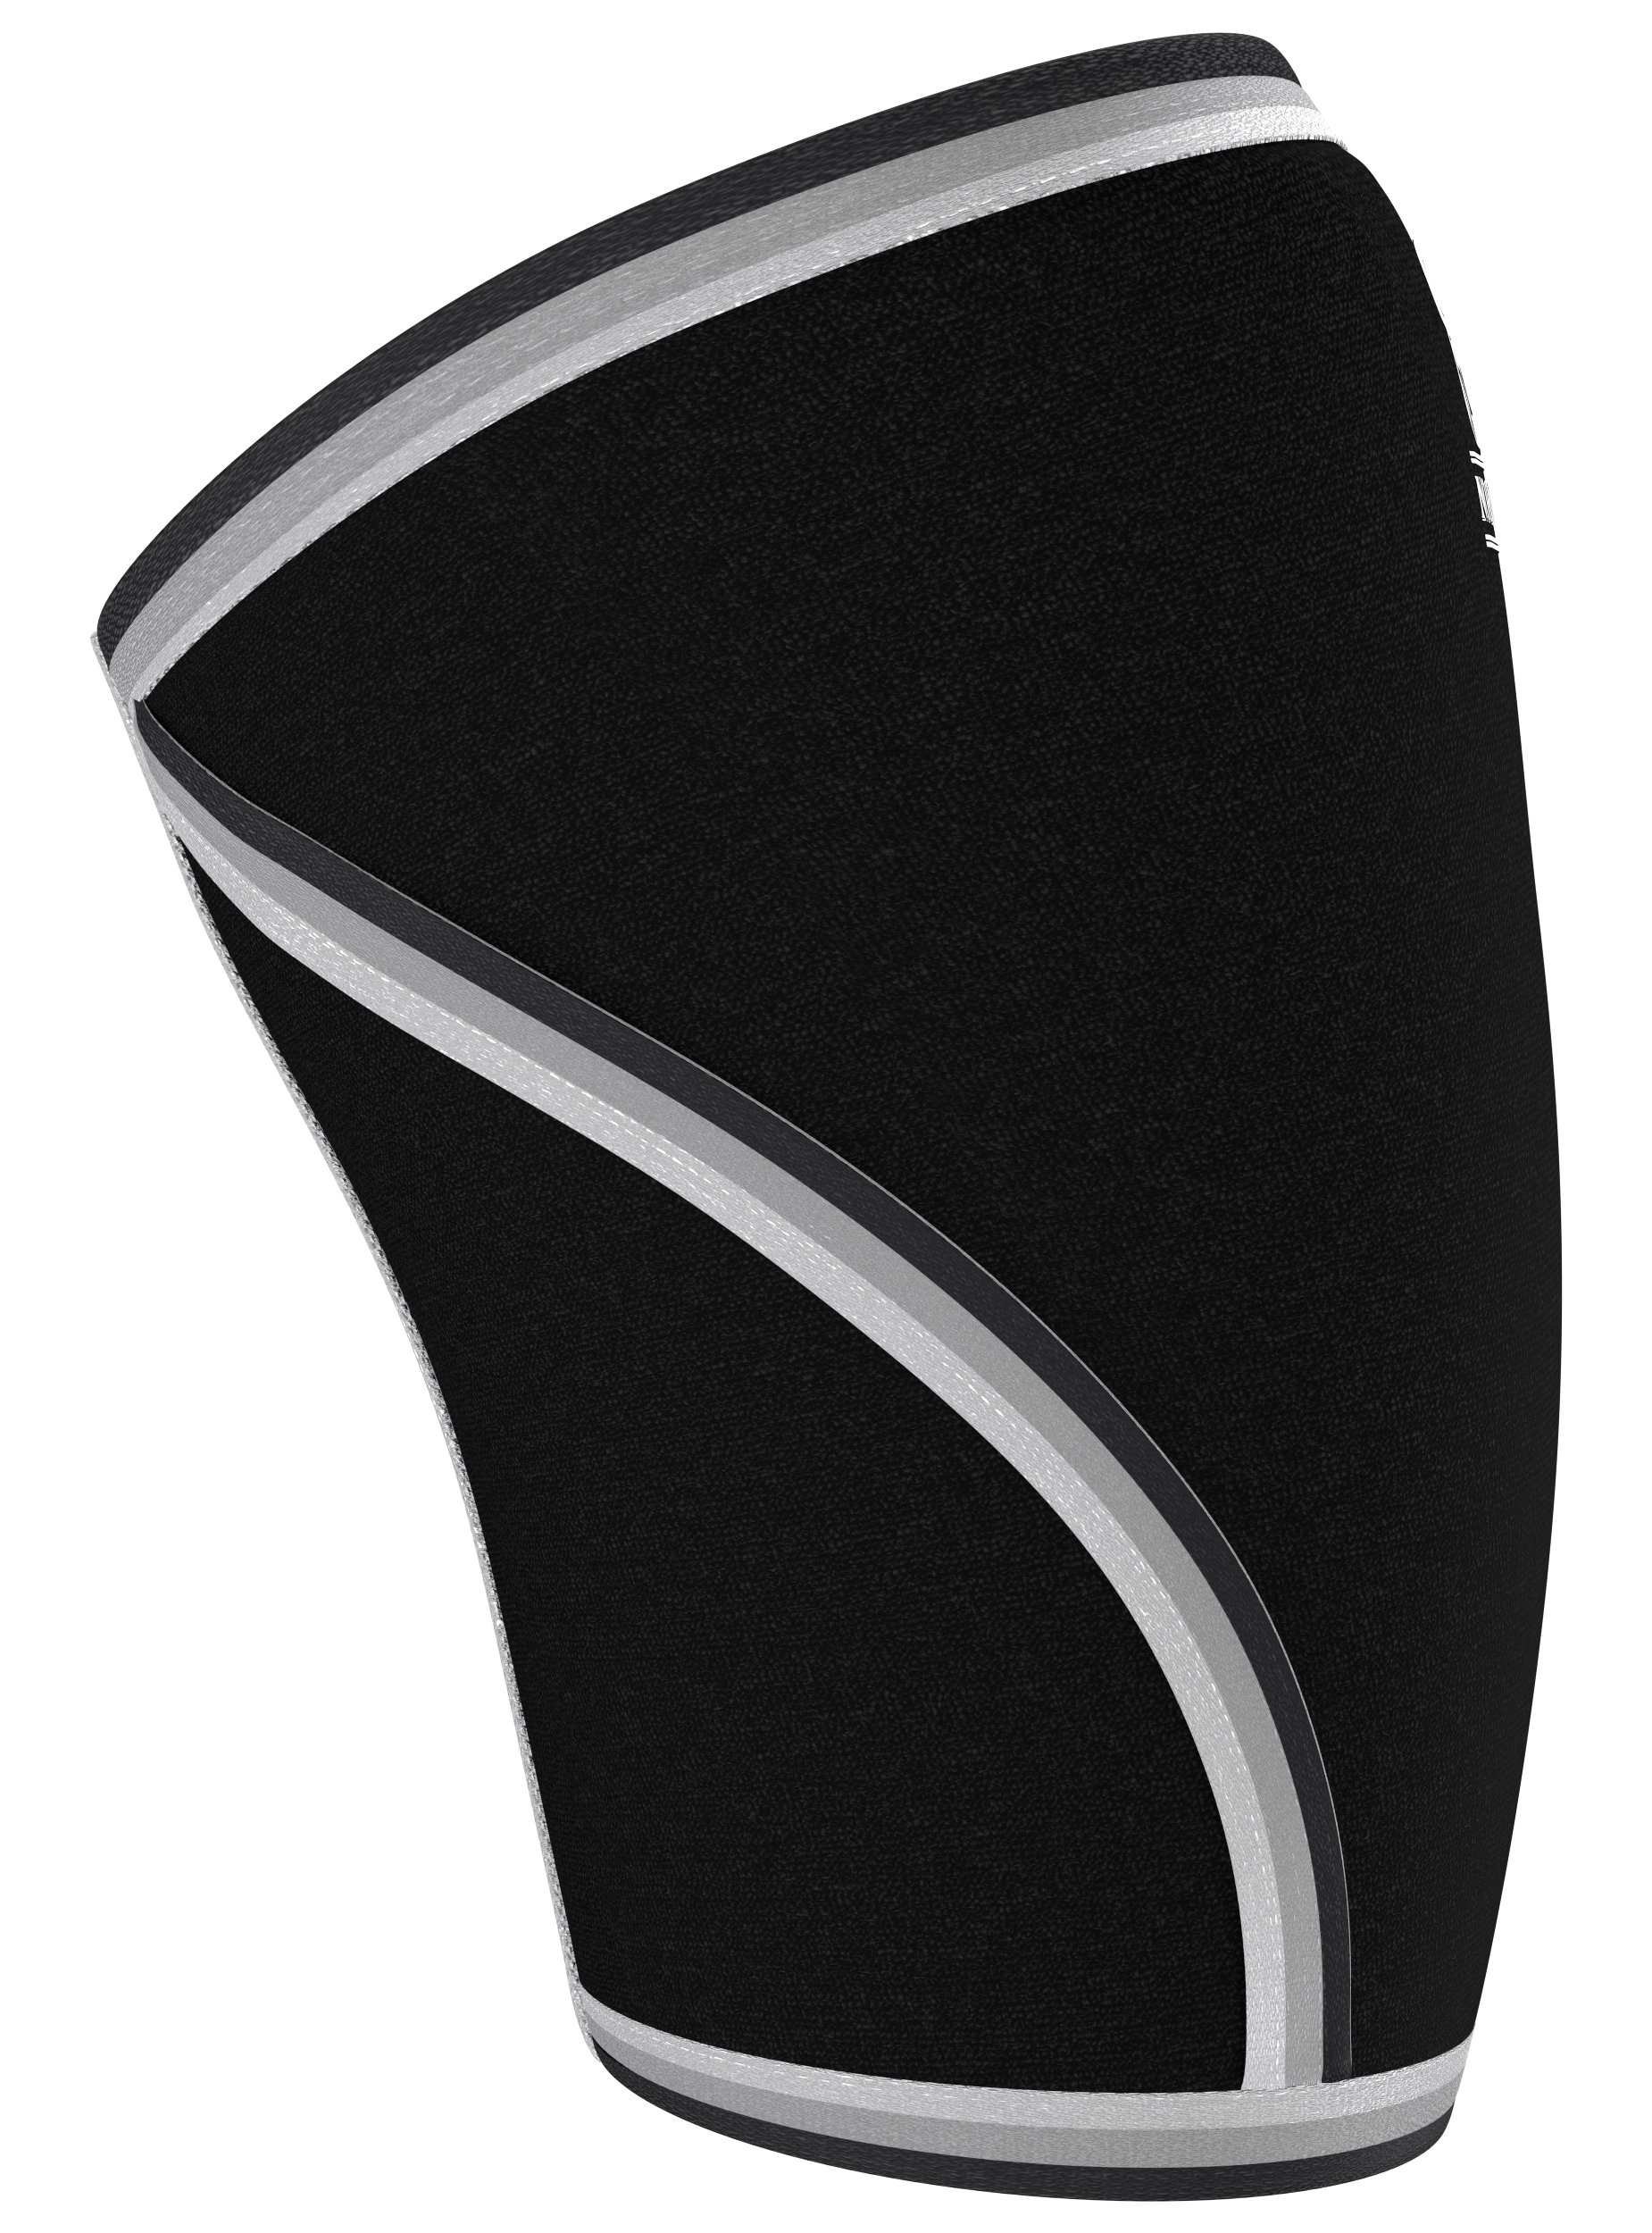 Nordic Lifting Knee Sleeves (1 Pair) Support & Compression for The Best Squats, 7mm Neoprene X-Small by Nordic Lifting (Image #8)